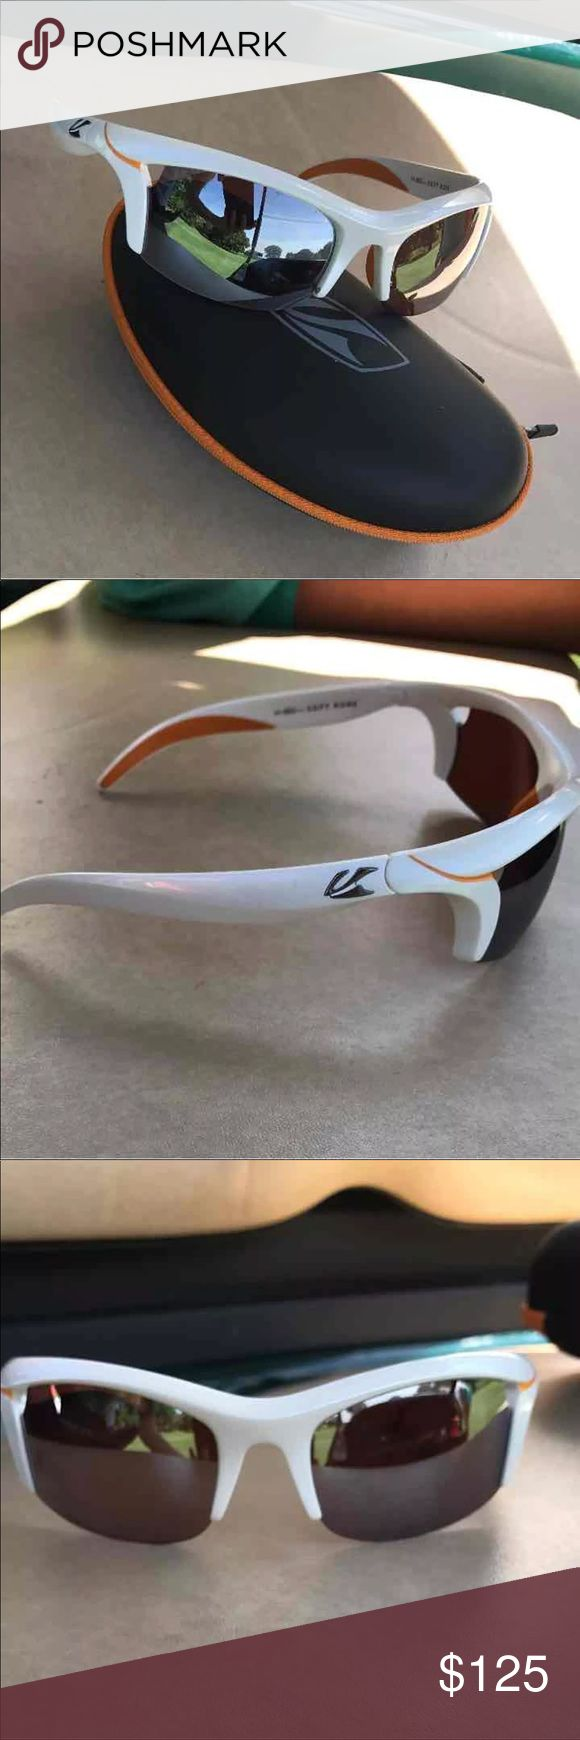 Kaenon UV Protective Sunglasses White/Orange - comes with case kaenon Accessories Sunglasses